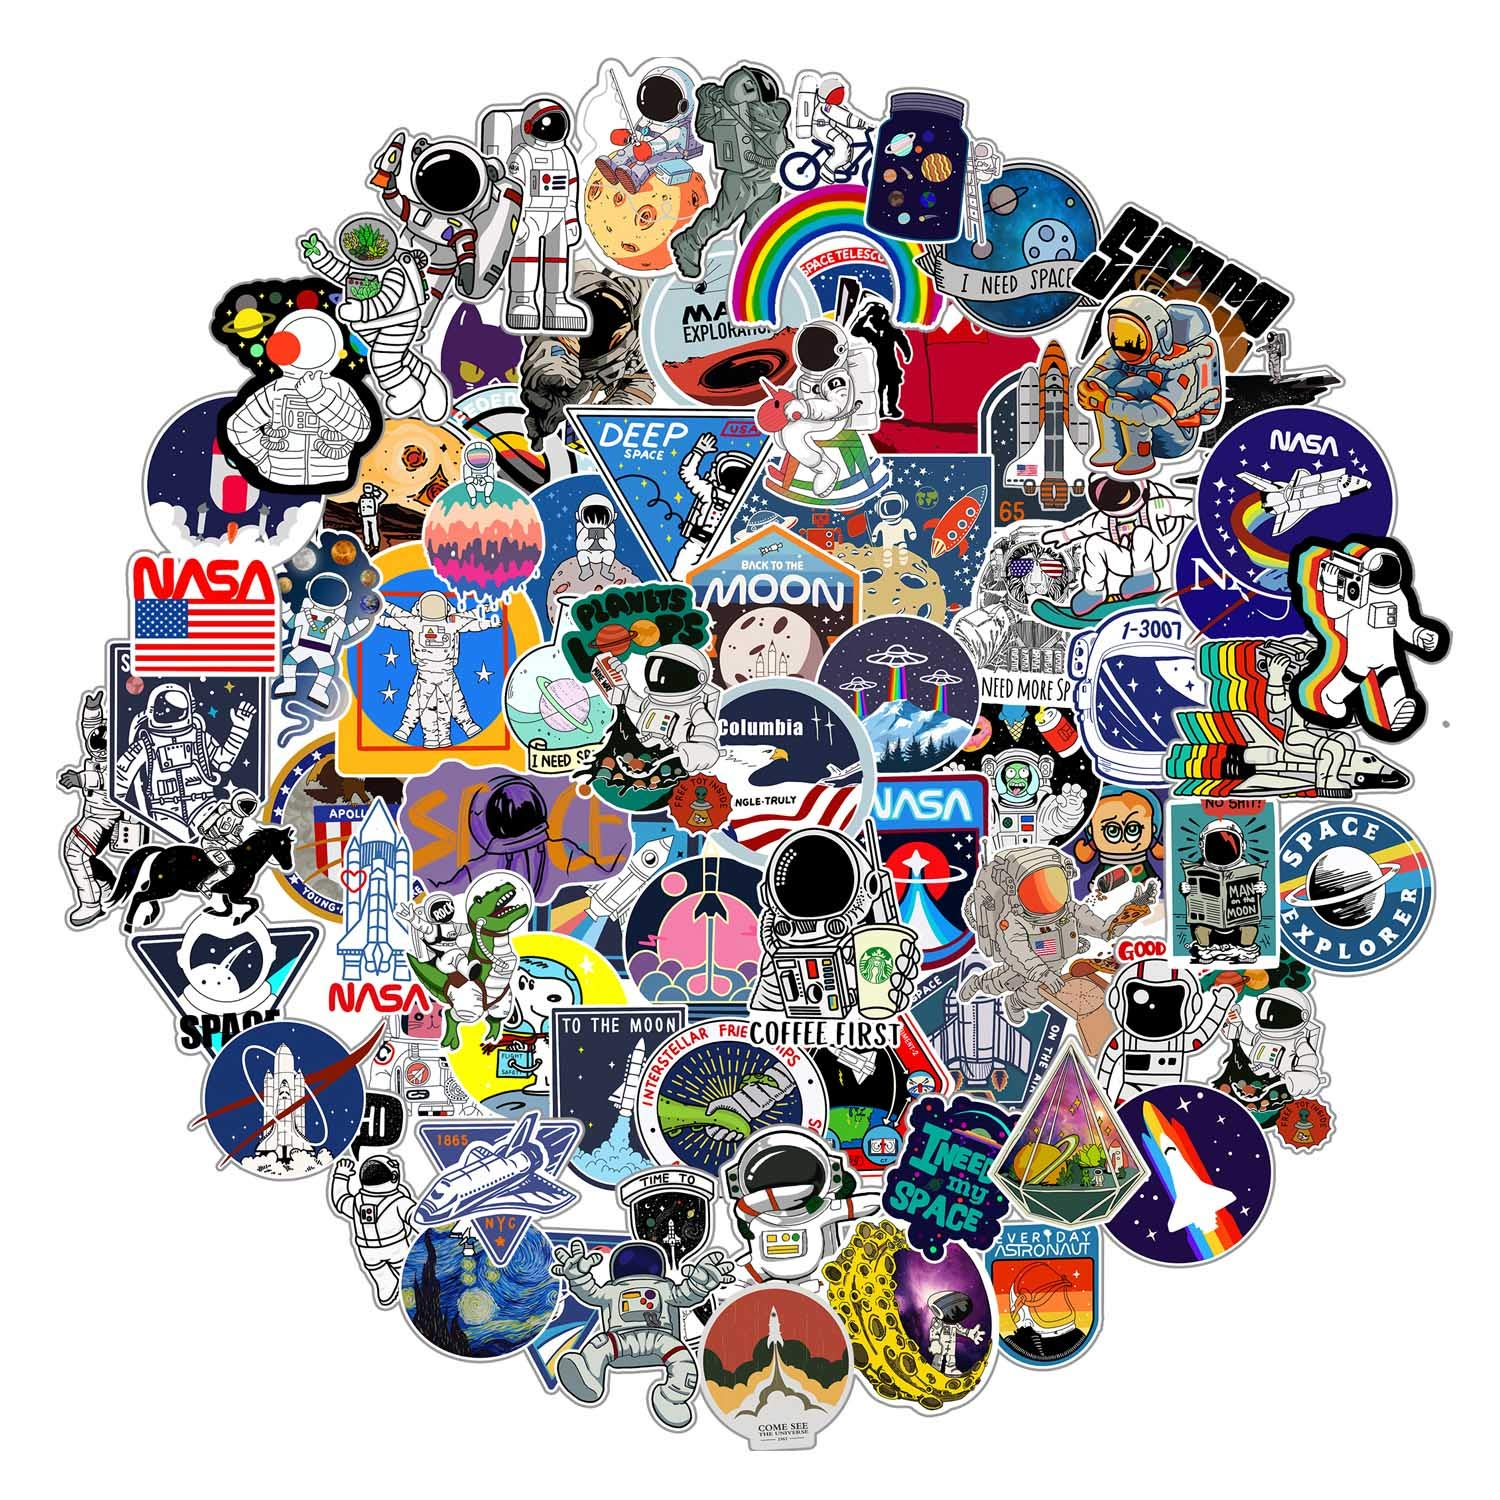 112pcs NASA Space Explorer Stickers Pack for Water Bottle Laptop ,Waterproof Vinyl Vsco Stickers Bomb, Space Gifts for Teens Boys Cool Stickers for Skateboard Luggage Decals